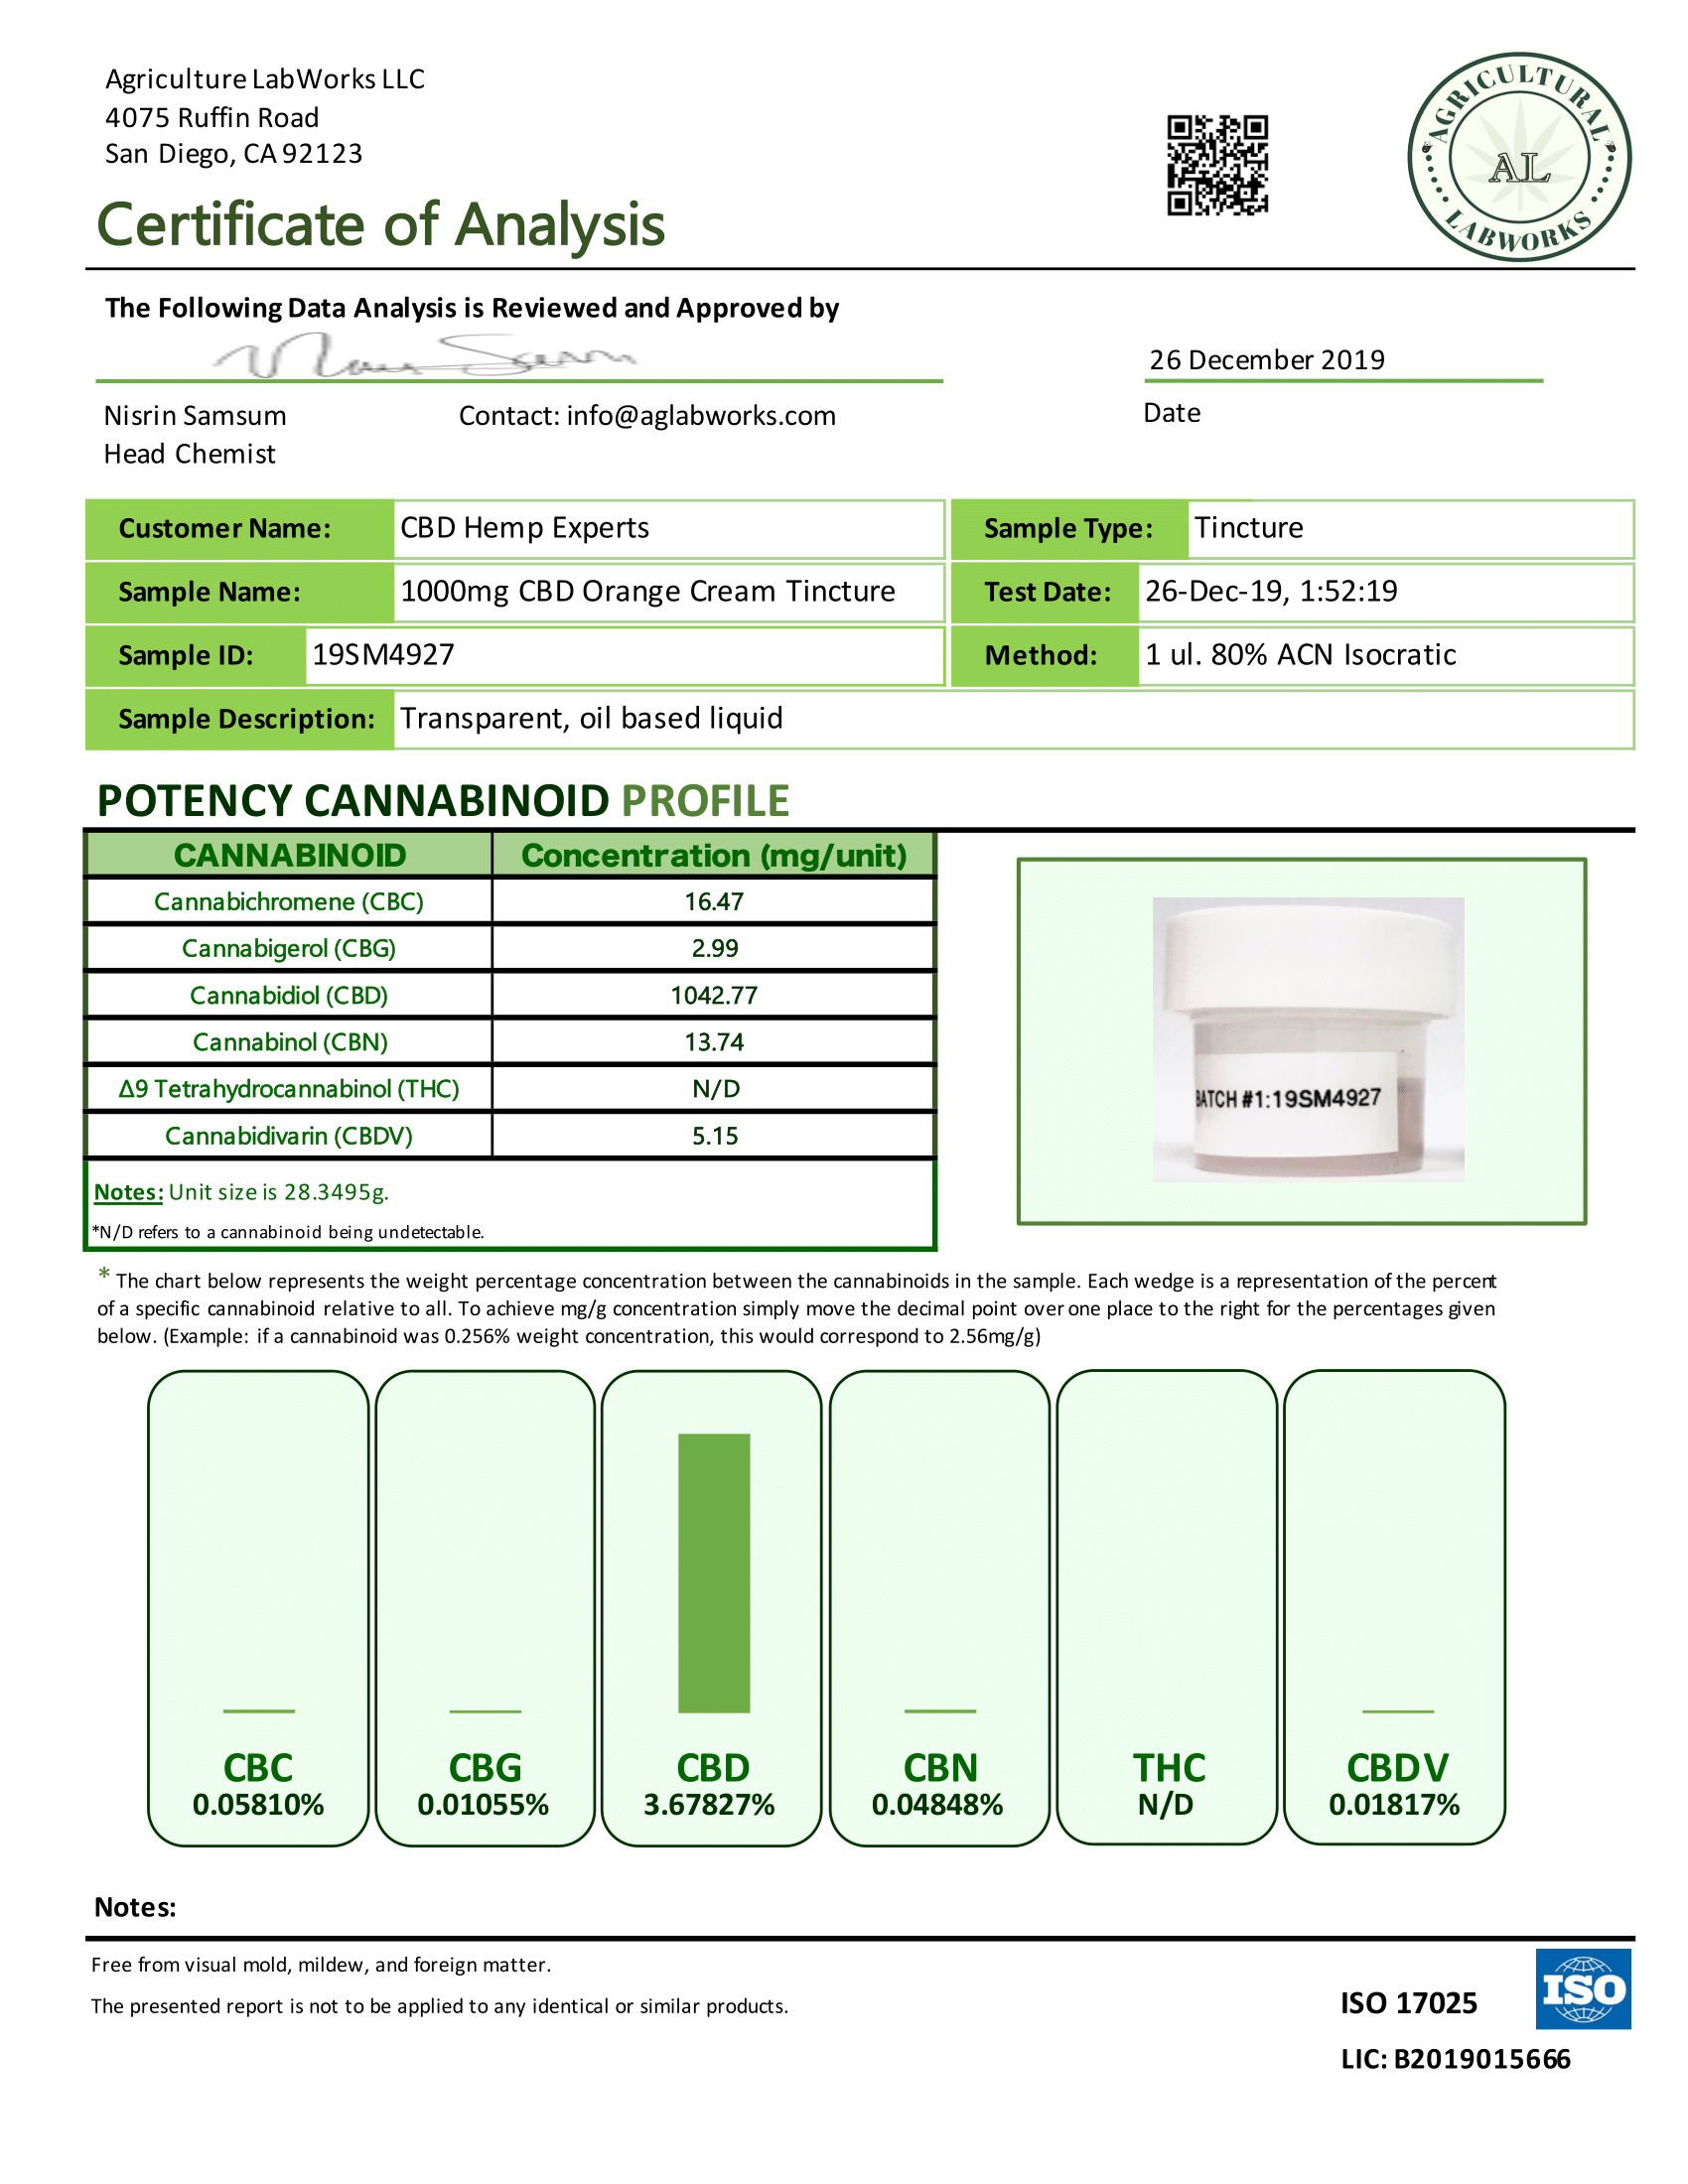 1000mg in blueberry tincture hemp oil mct test lab report